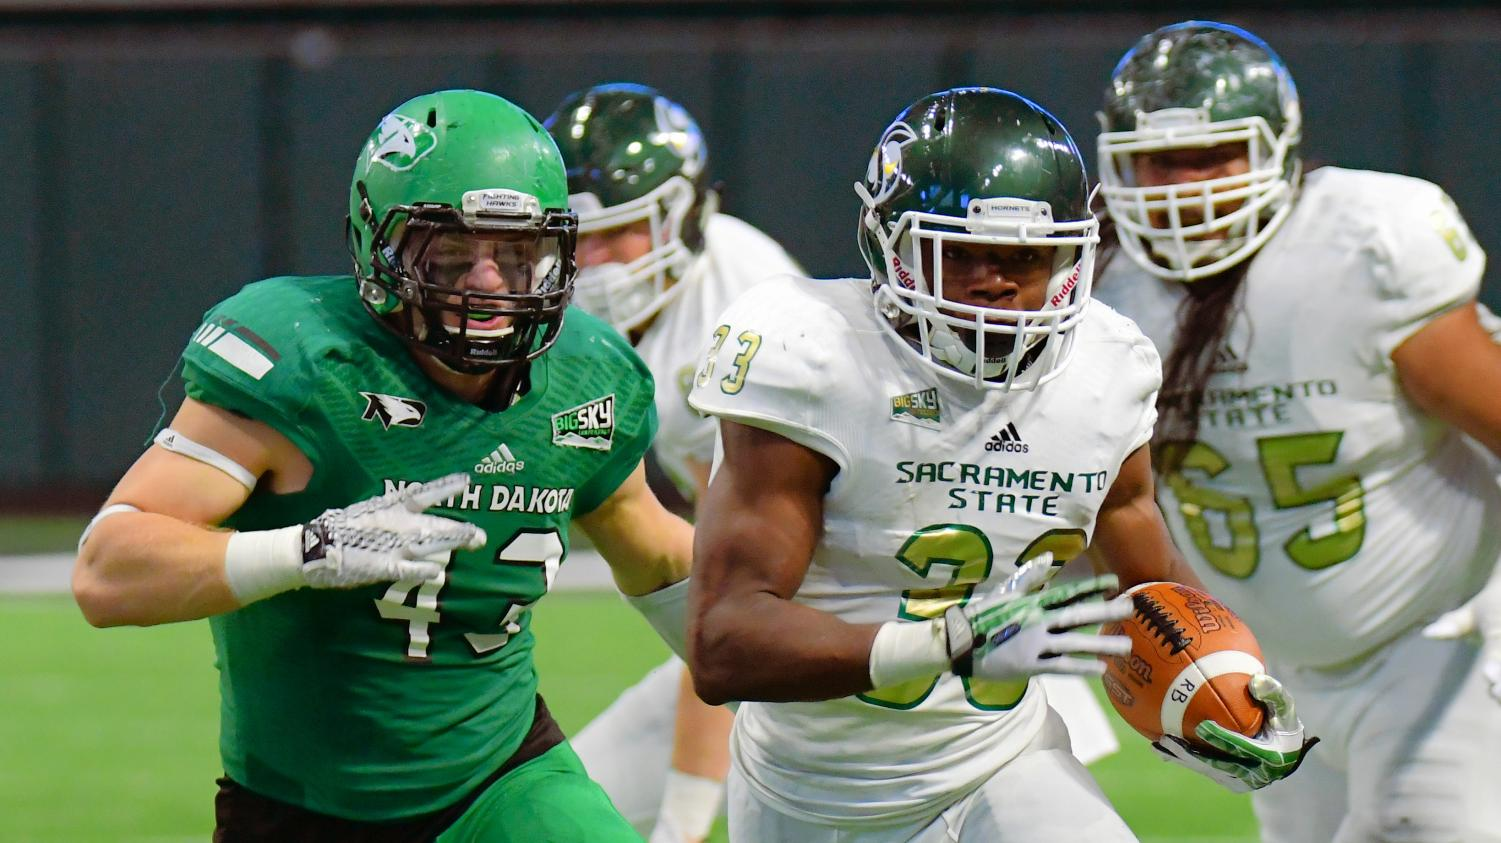 Sacramento State freshman running back Elijah Dotson rushes past North Dakota senior defensive lineman Drew Greely Saturday, Oct. 21 at the Alerus Center in Grand Forks, North Dakota. Sac State defeated North Dakota 34-27.